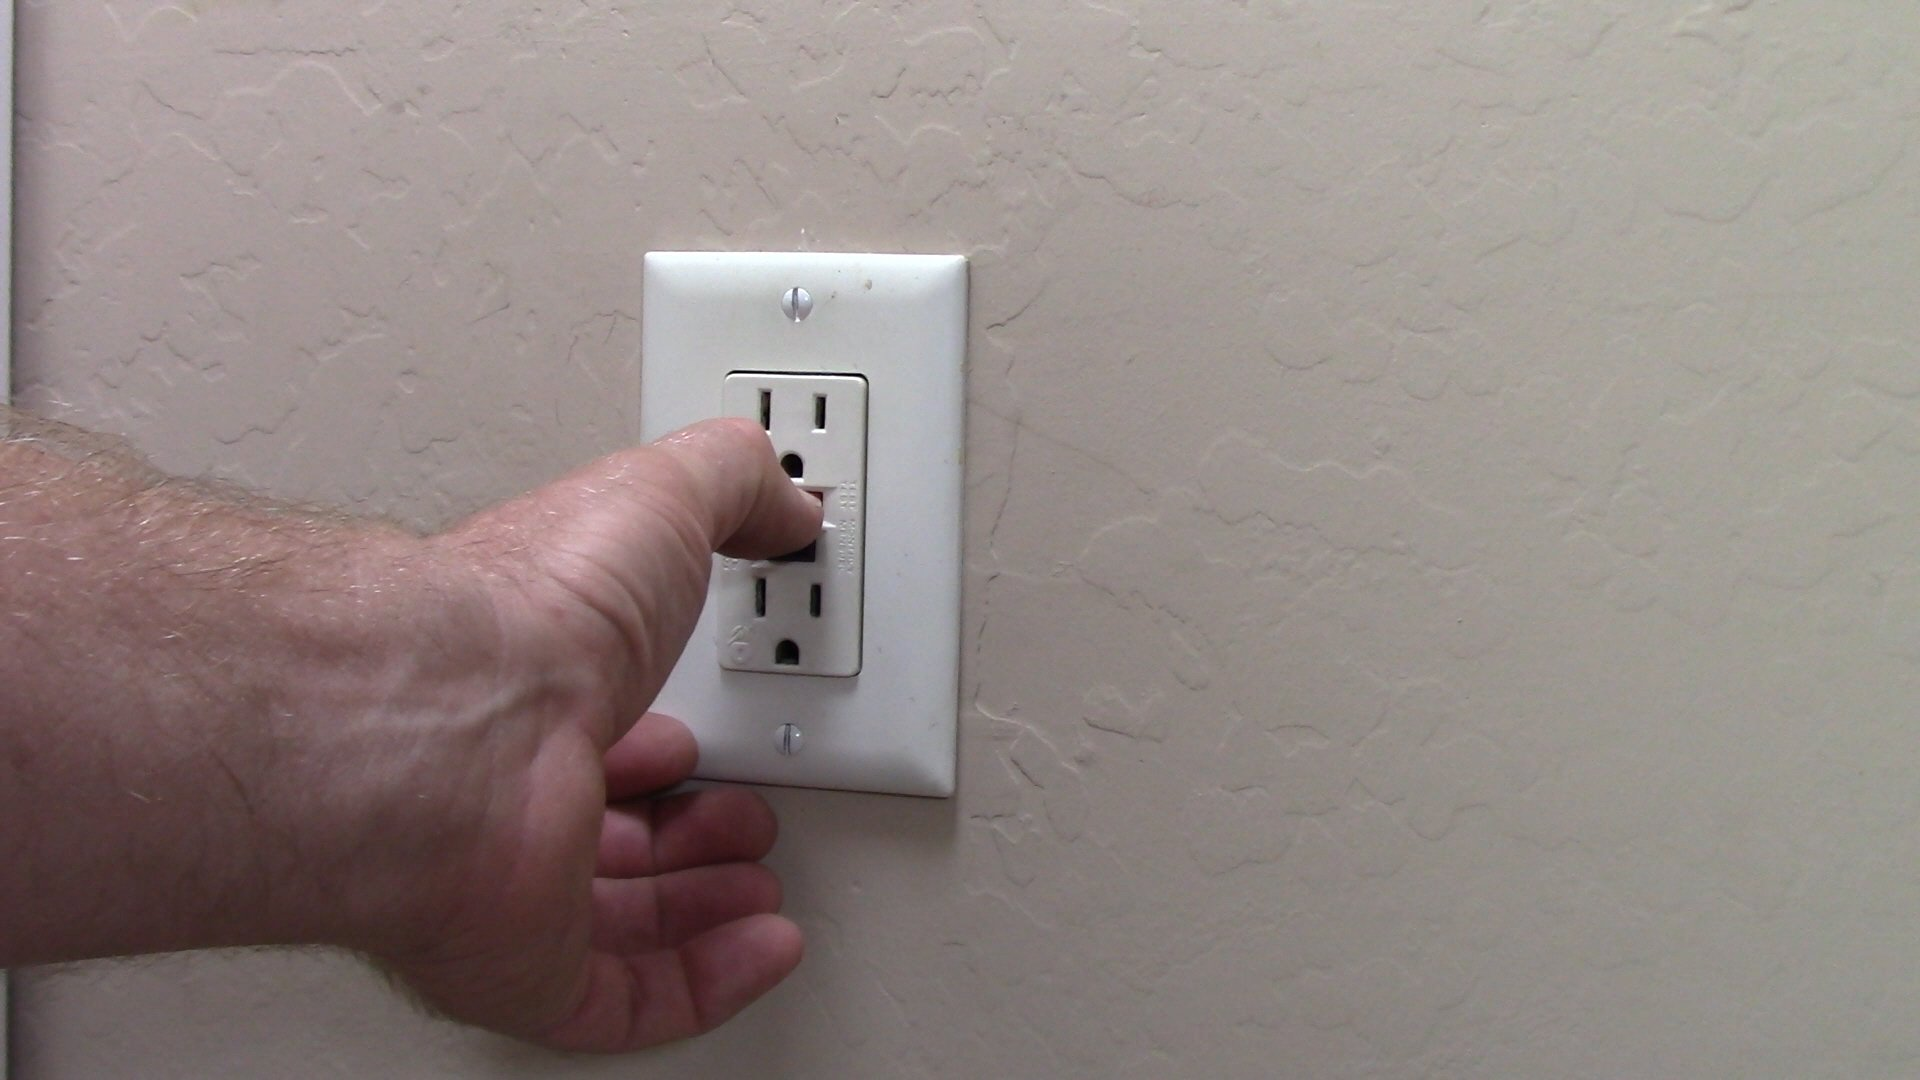 How To Replace A Faulty Gfci Receptacle Electrical Online Wiring Pushing The Test Button Did Nothing Nor Reset